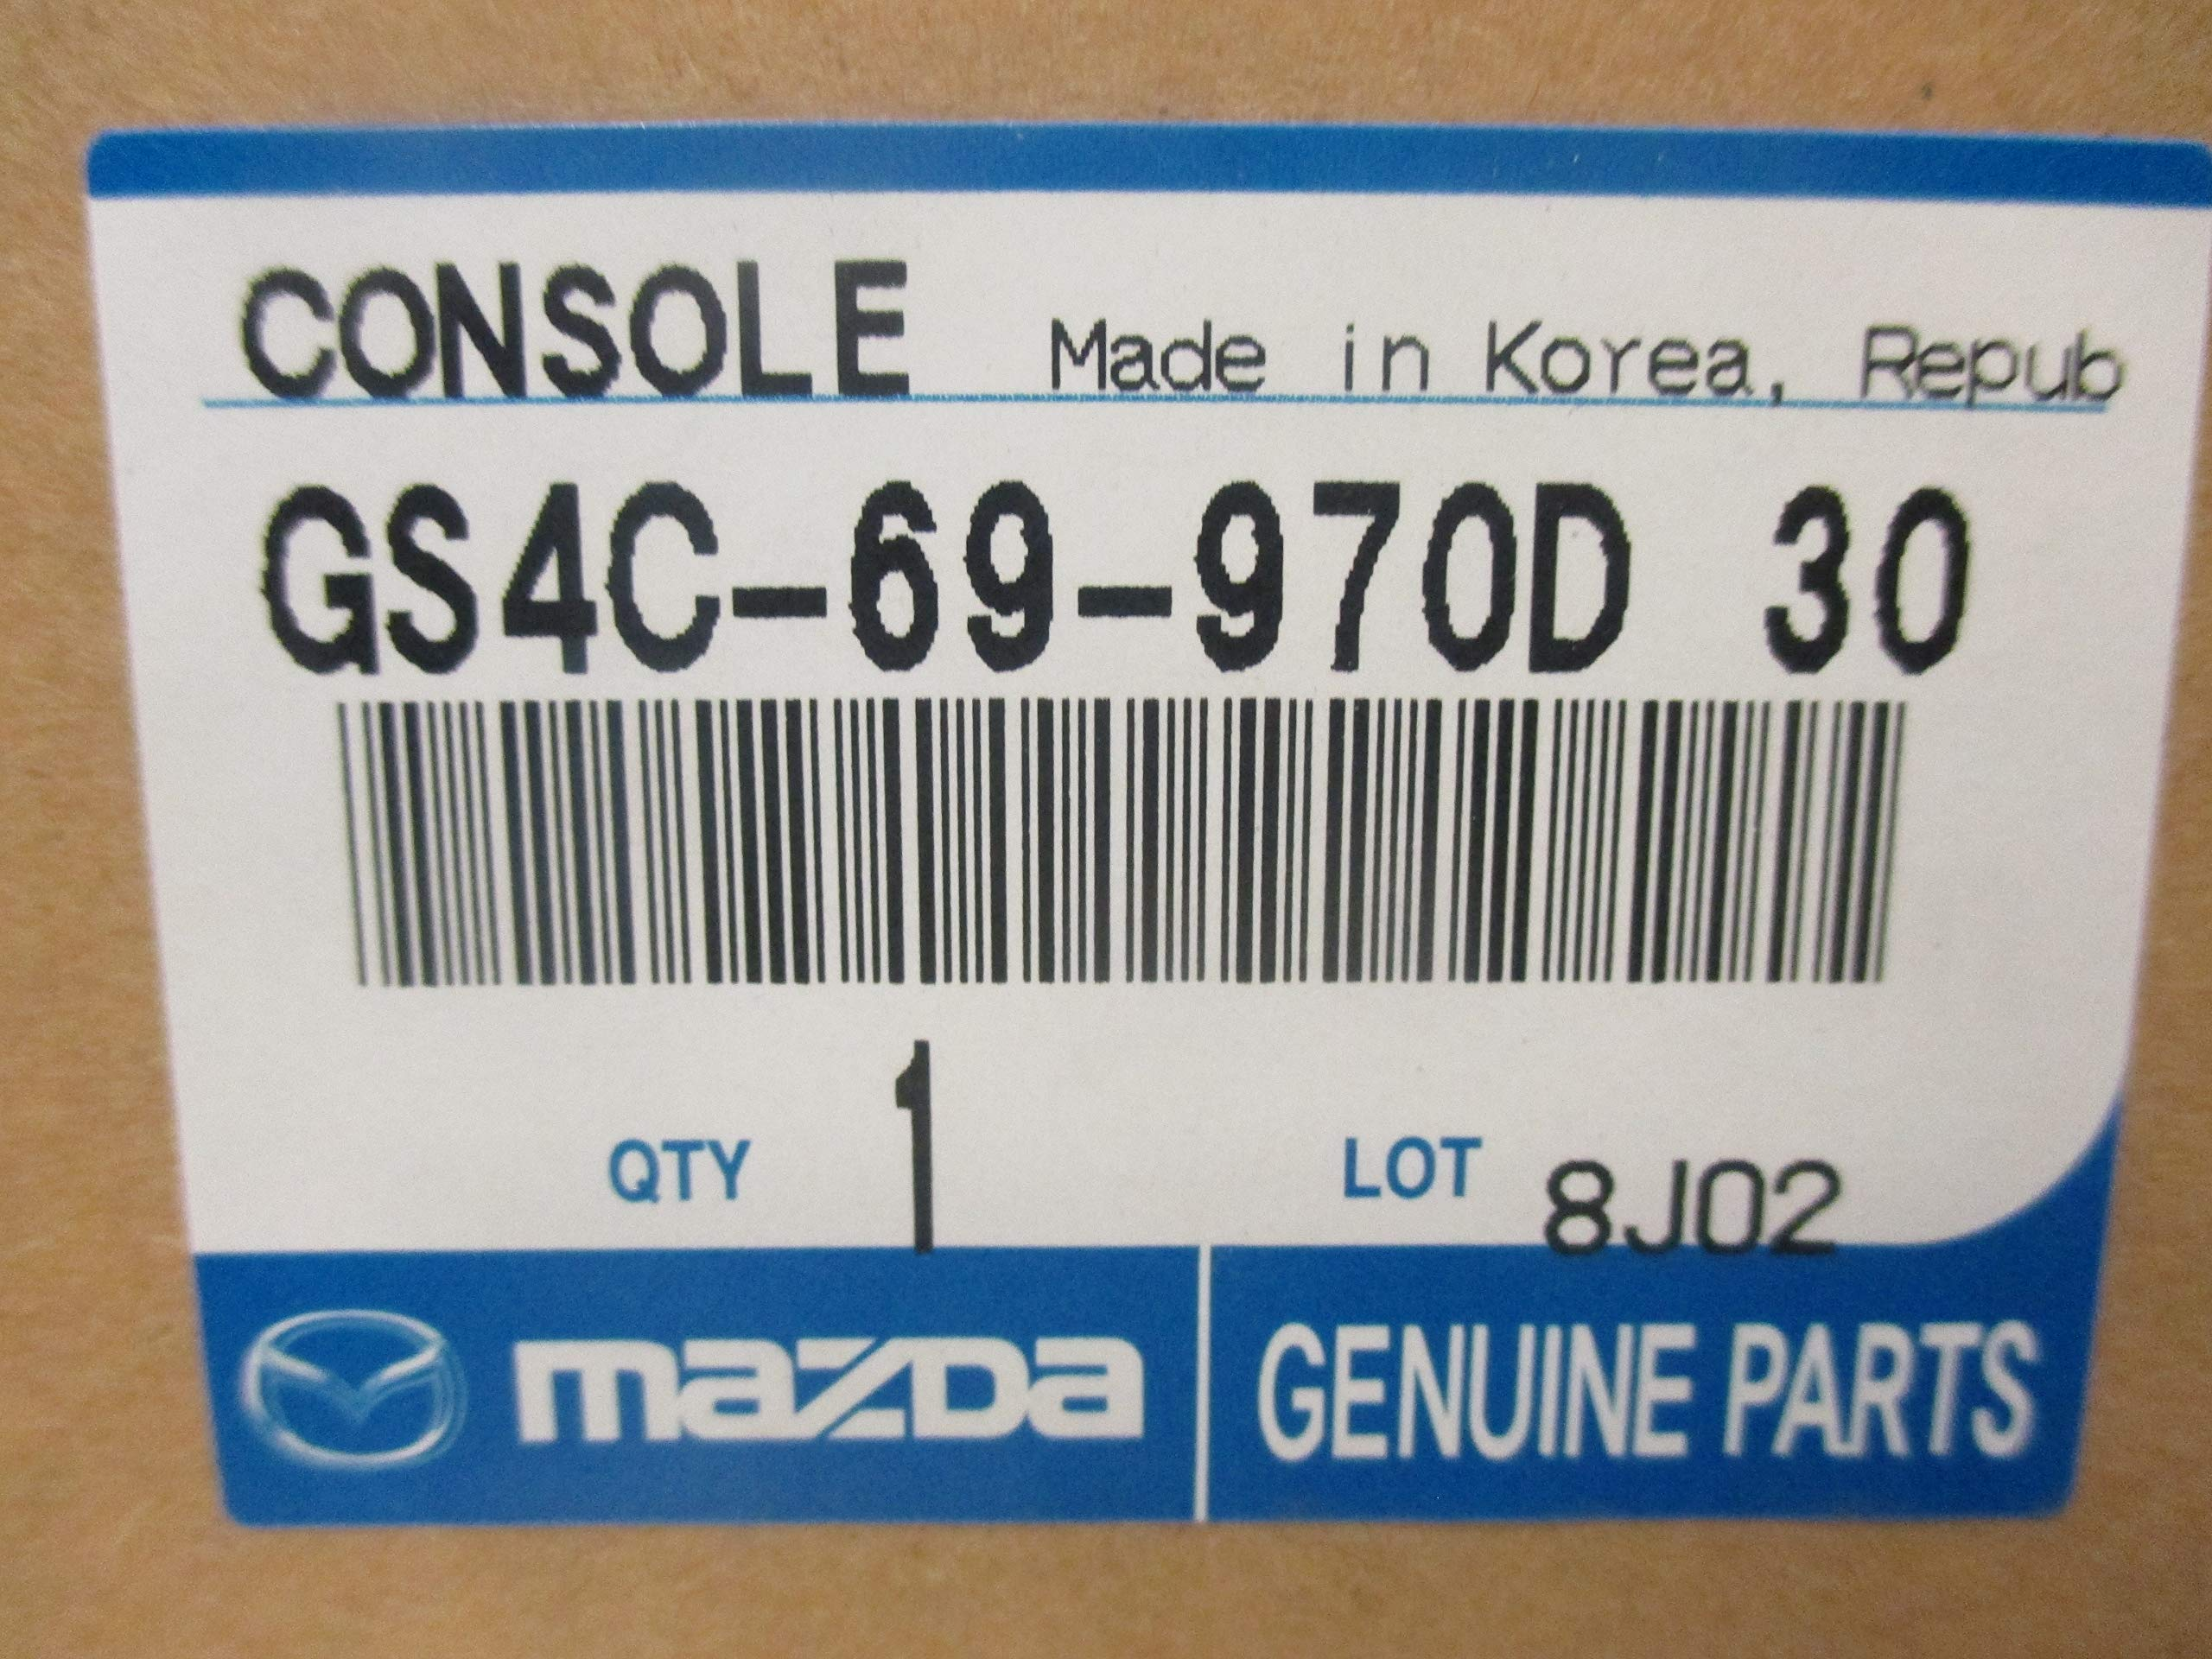 Mazda New Genuine OEM 2009-2011 6 Overhead Console Map Reading Lamp Light Beige by Mazda (Image #3)